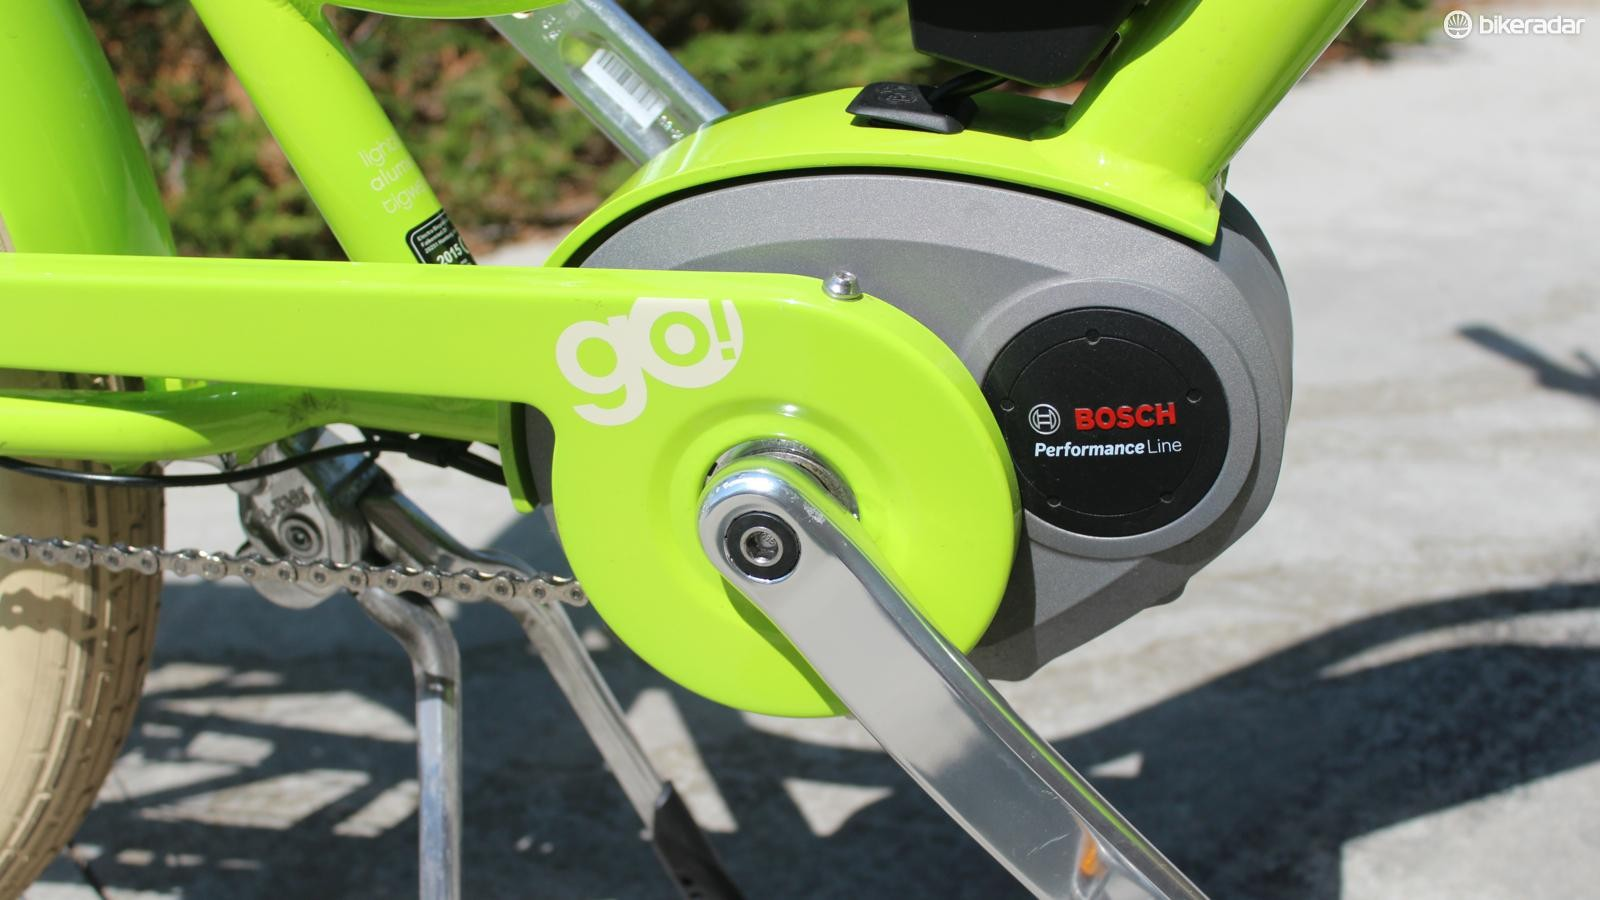 A Bosch Performance 250w mid-frame motor offers four levels of pedal-assist power